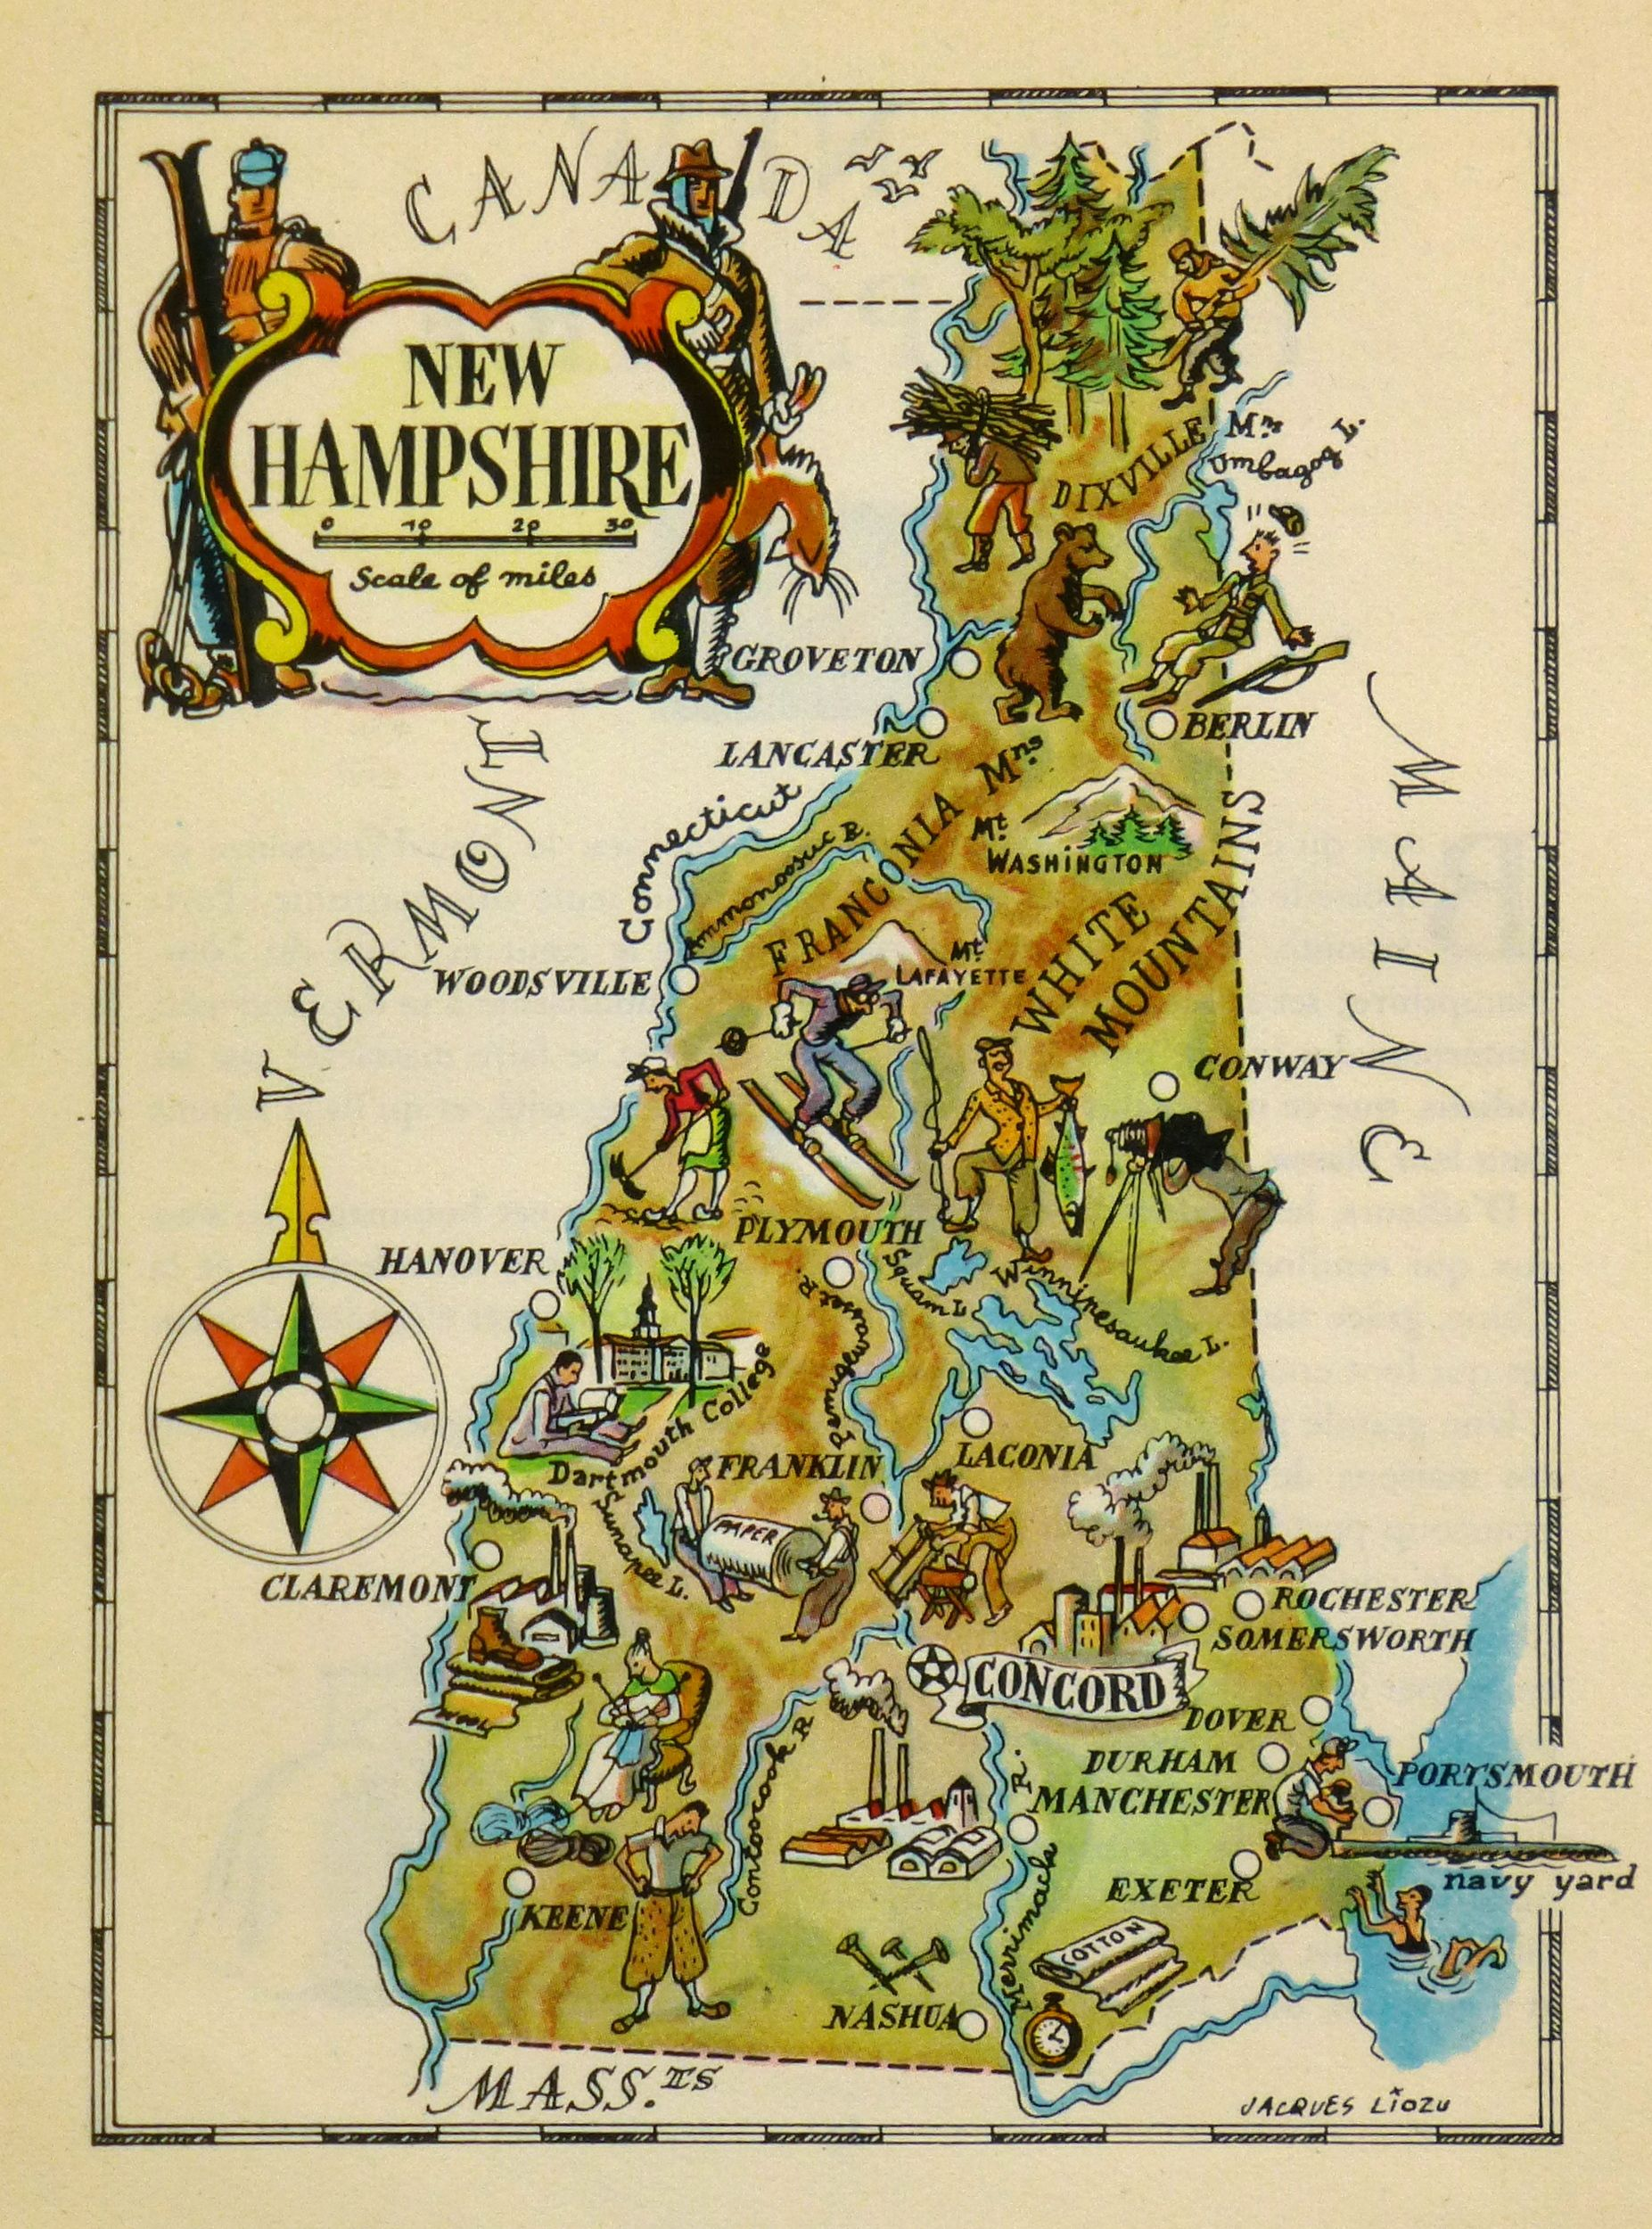 Vintage Pictorial Map Of New Hampshire By Jacques Lizou In - New hampshire on map of usa